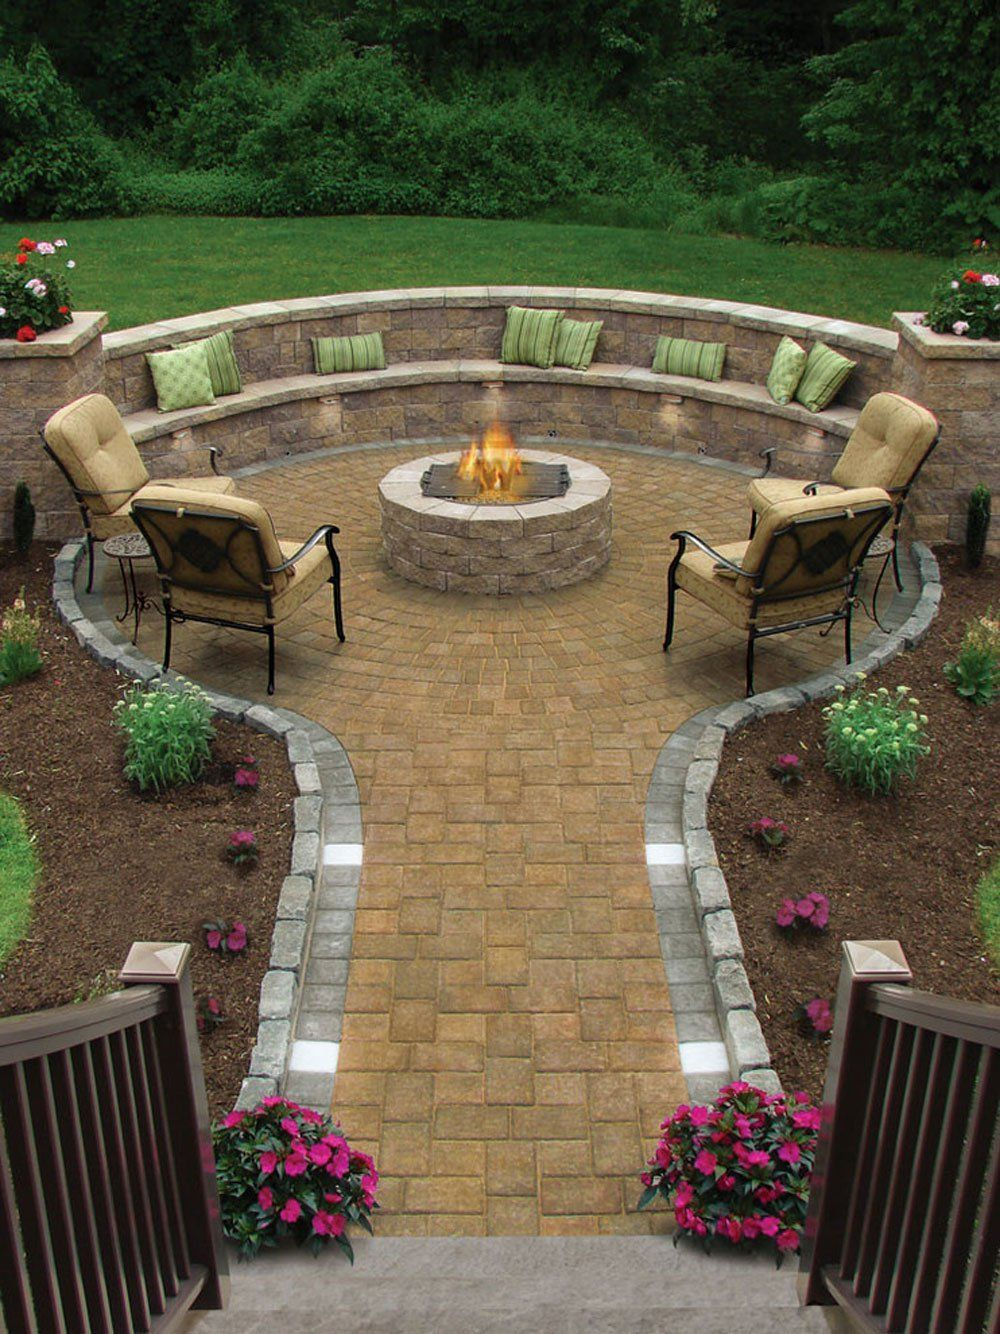 17 Of The Most Amazing Seating Area Around The Fire Pit Ever throughout sizing 1000 X 1334